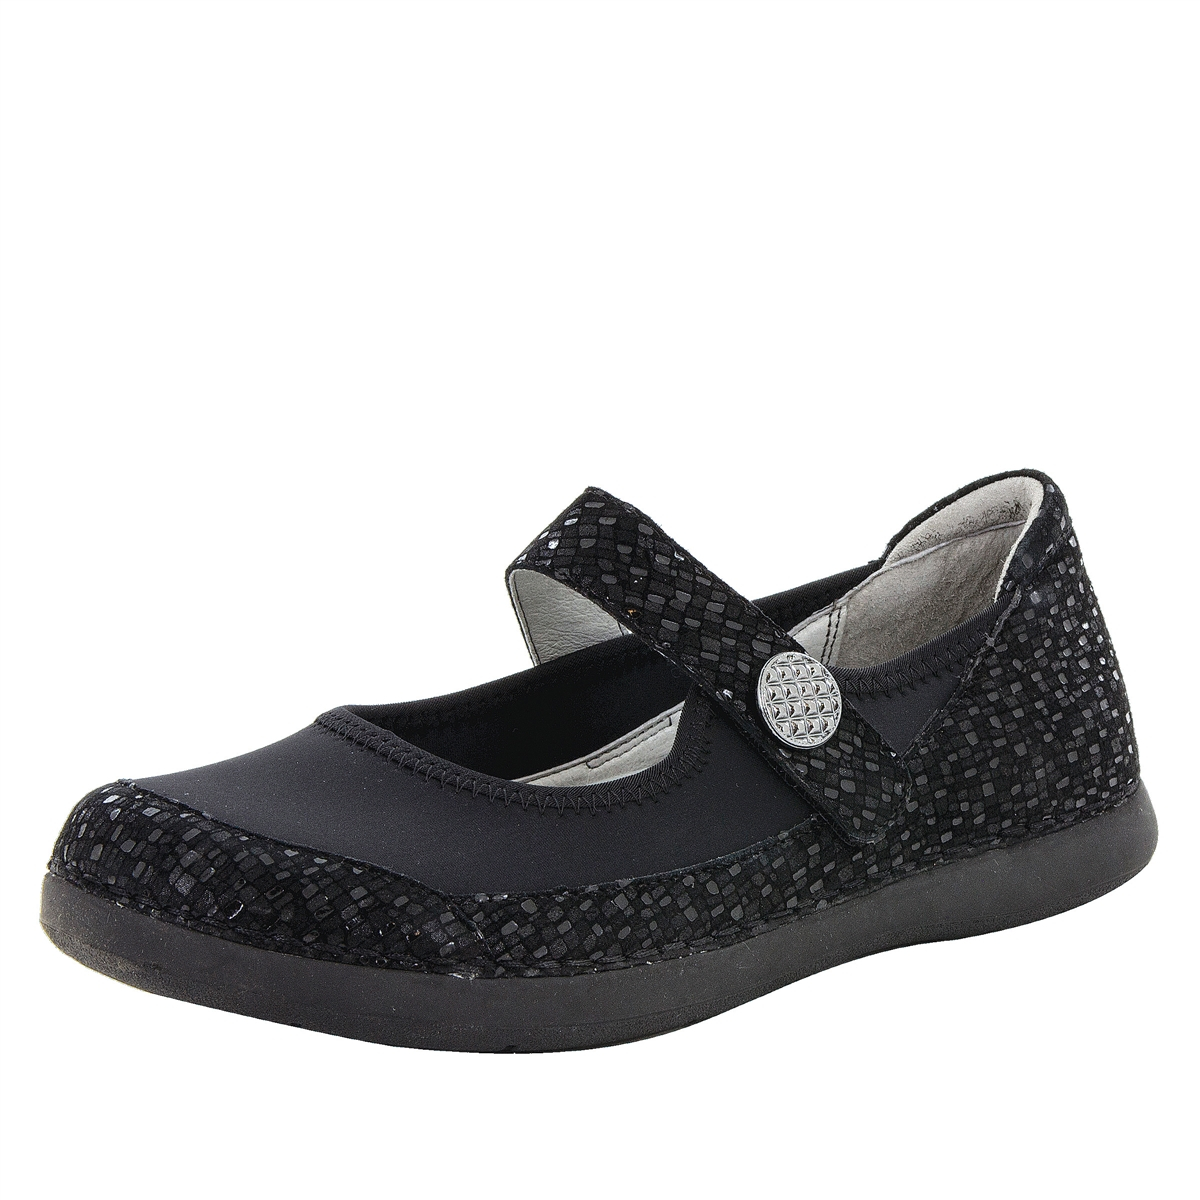 191e30fc0ff Women s Athletic Shoes from Alegria Shoes